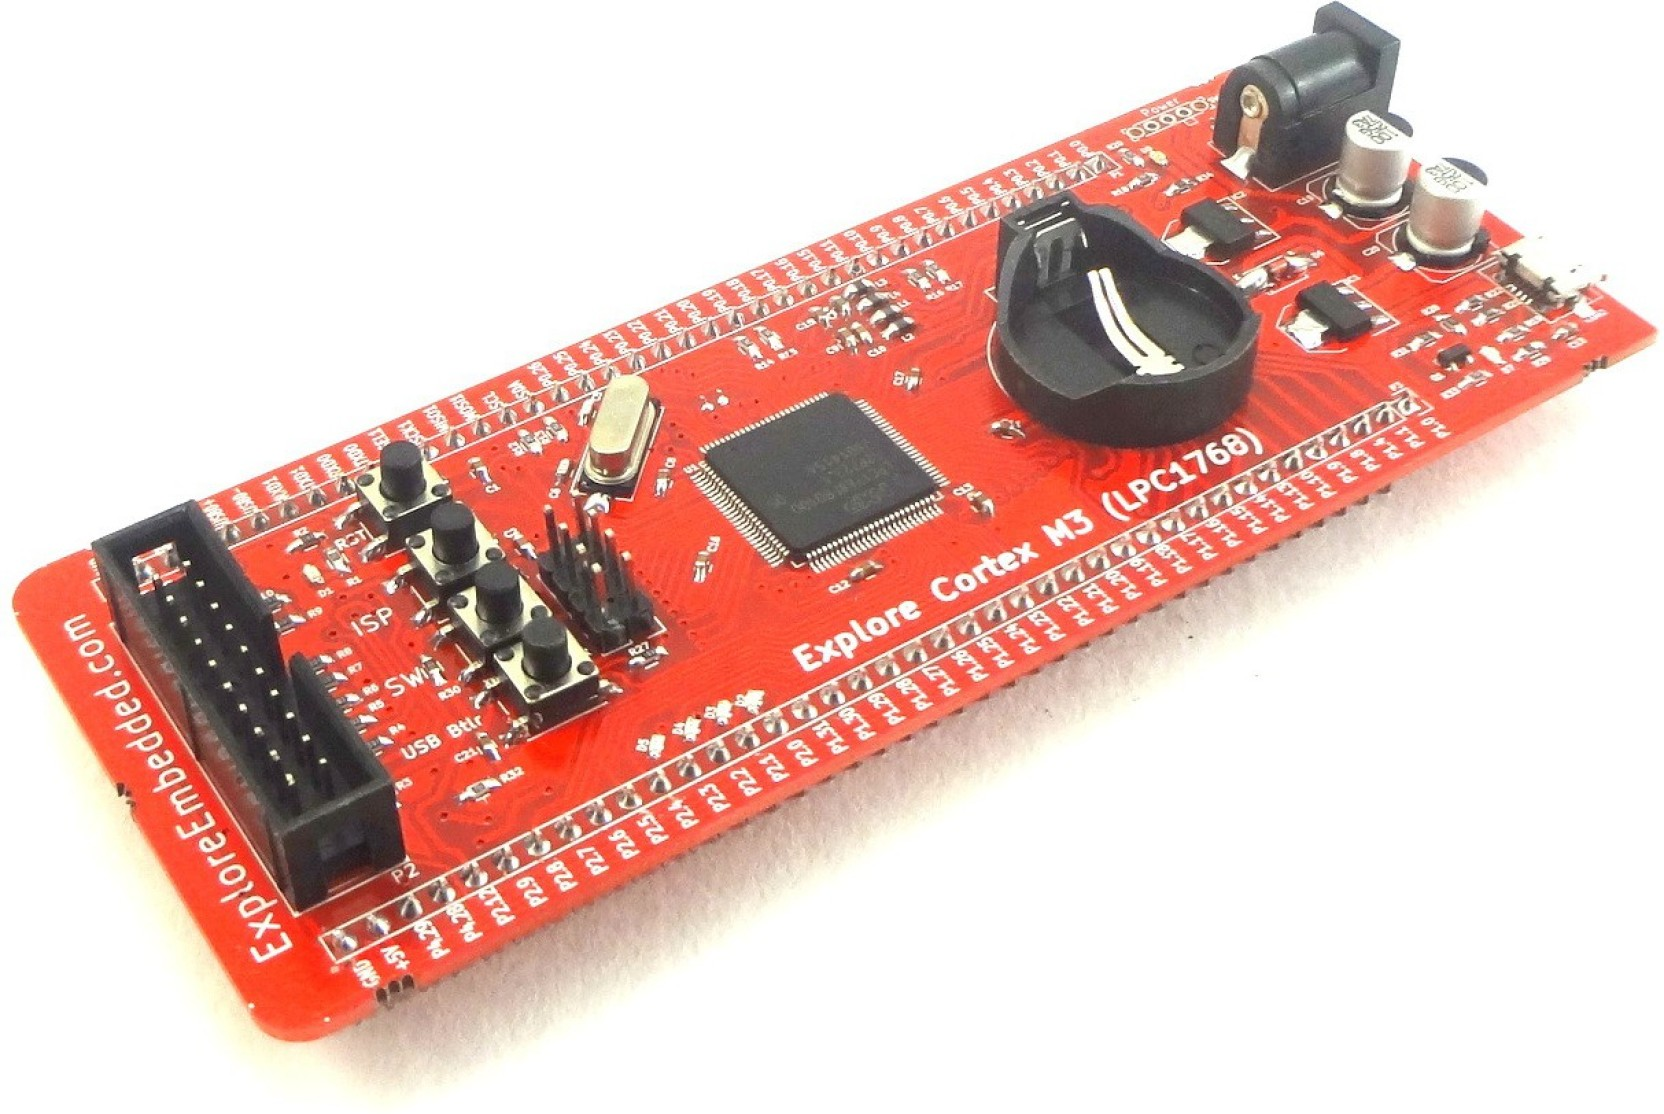 Explore Embedded Cortex M3 Lpc1768 Arm Development Board Price In Low Cost Microcontrollers Dev Kit Share